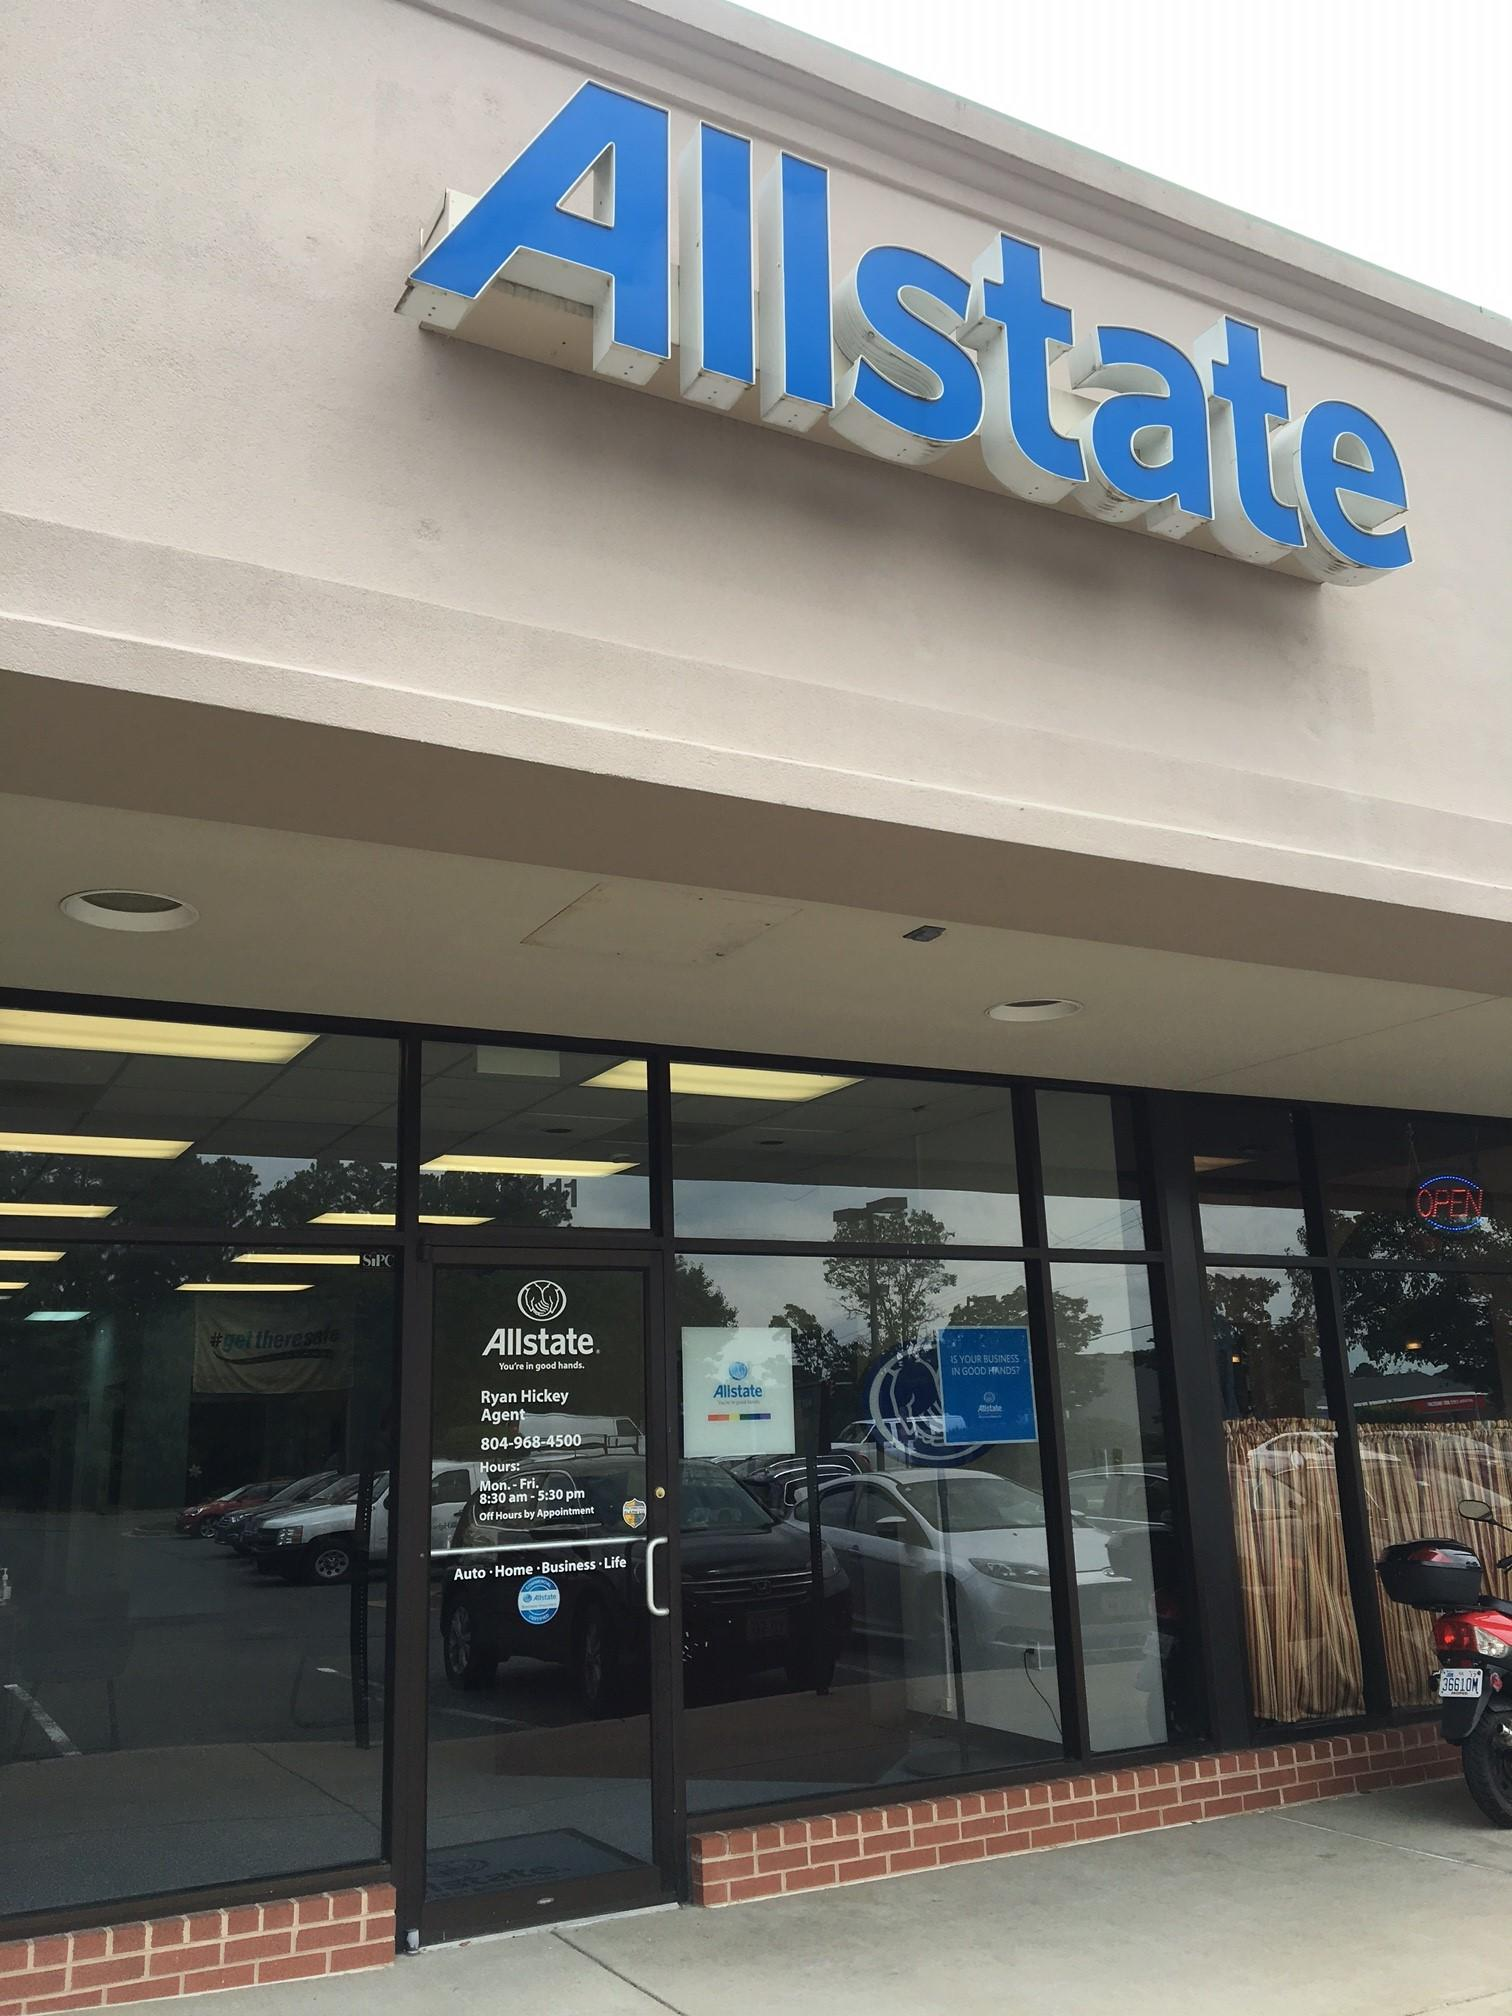 Ryan Hickey: Allstate Insurance image 2